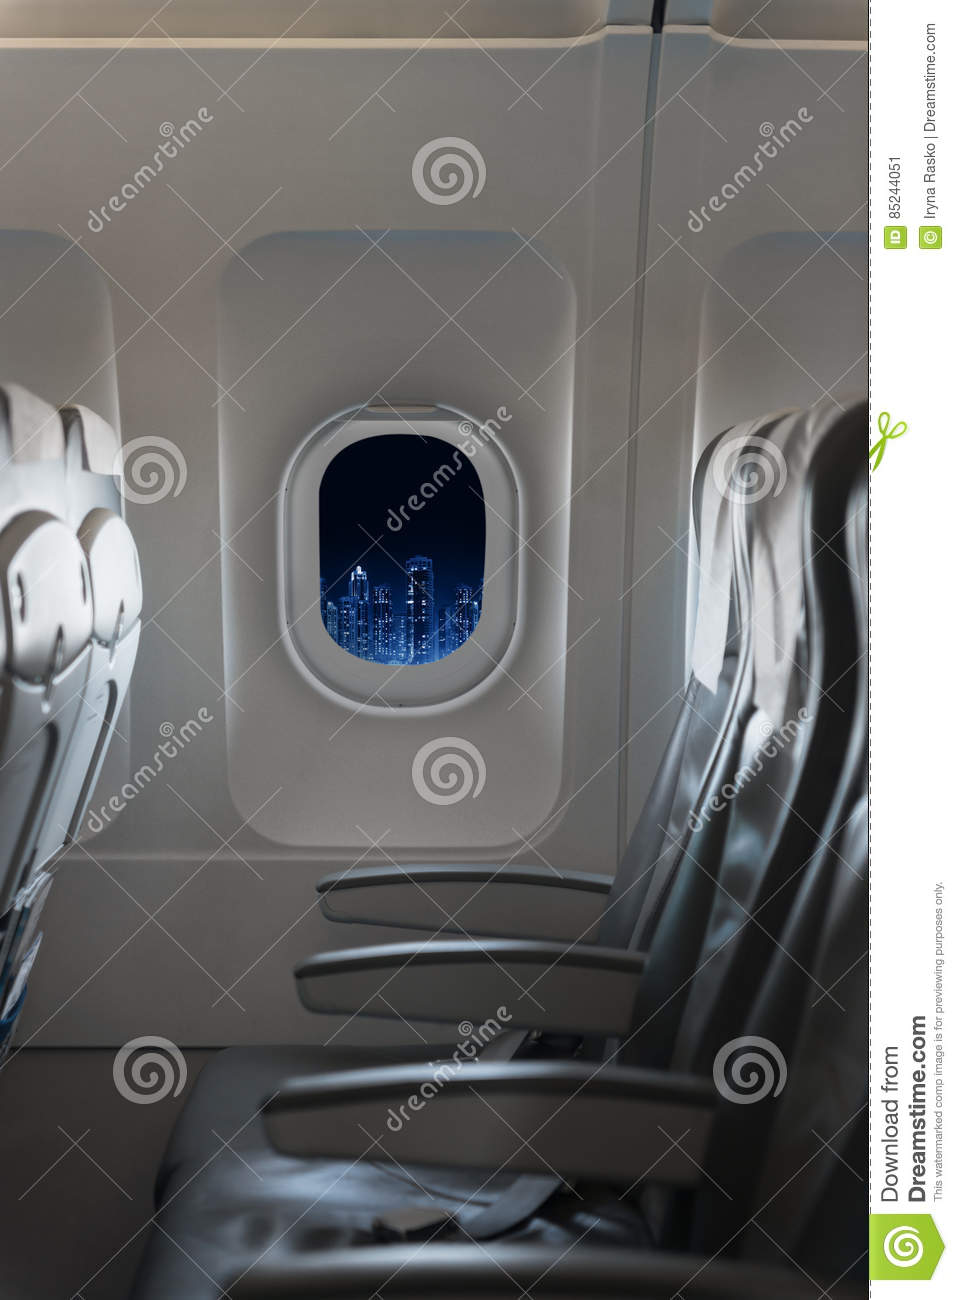 Tremendous View Of Modern City Skyline At Night In An Airplane Window Gmtry Best Dining Table And Chair Ideas Images Gmtryco